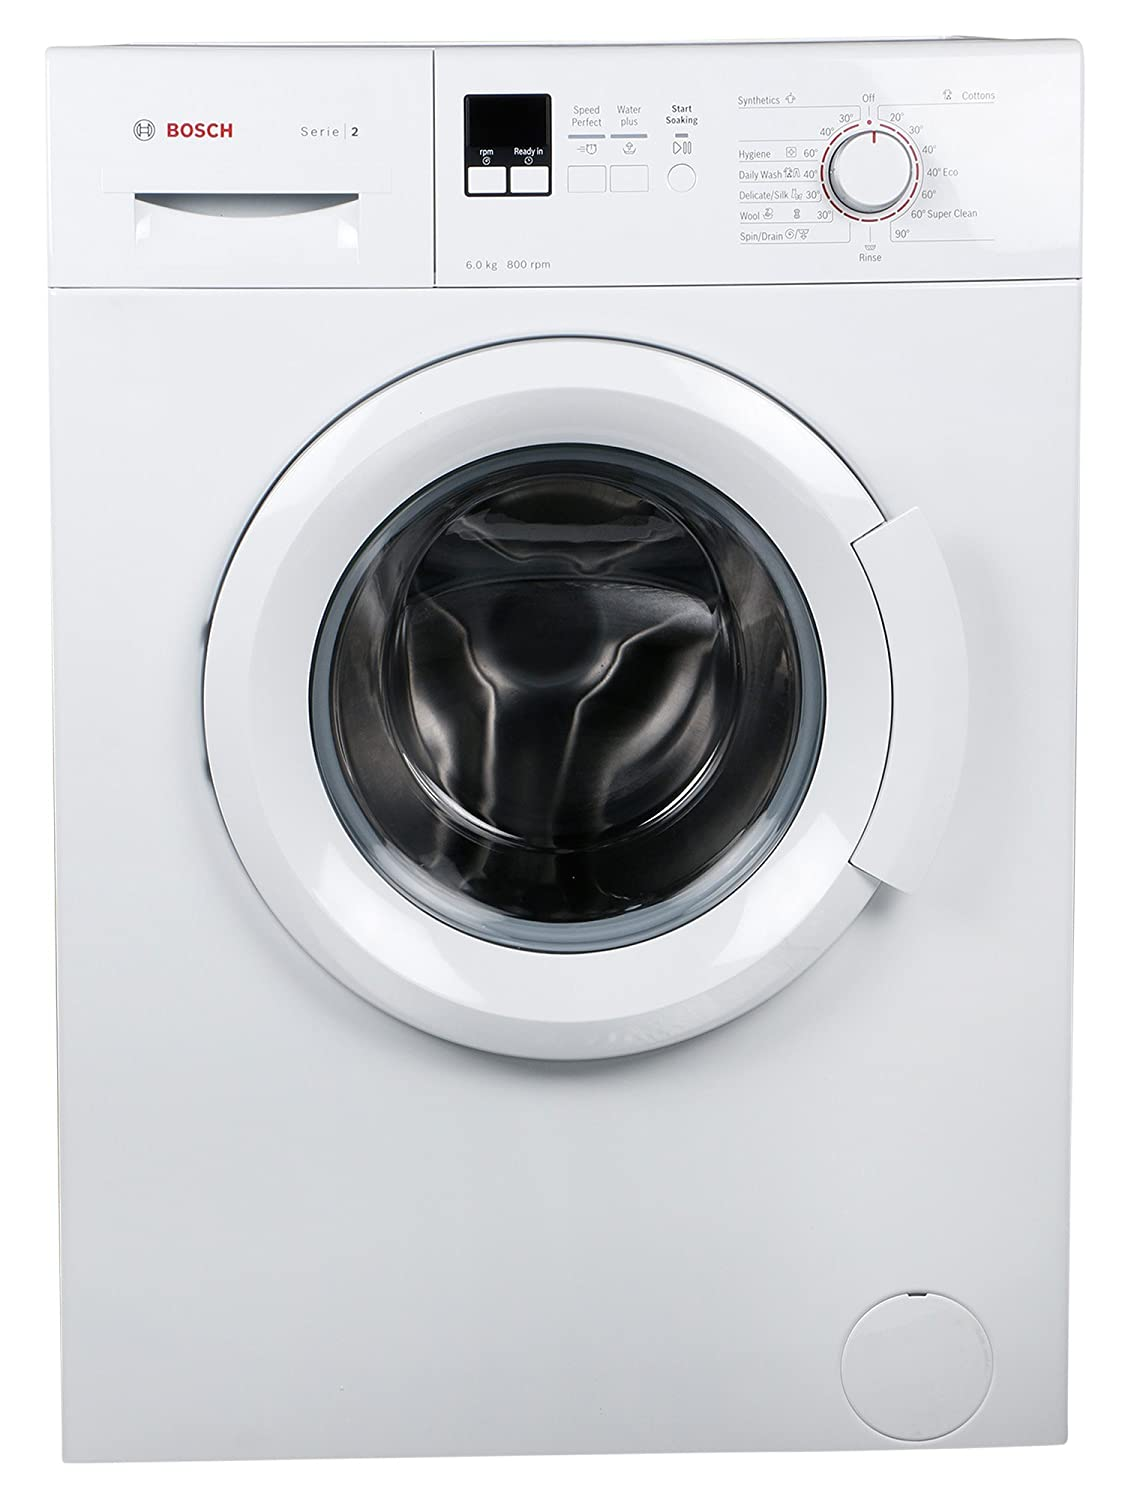 Best Fully Automatic Front Load Washing Machine in India 2018